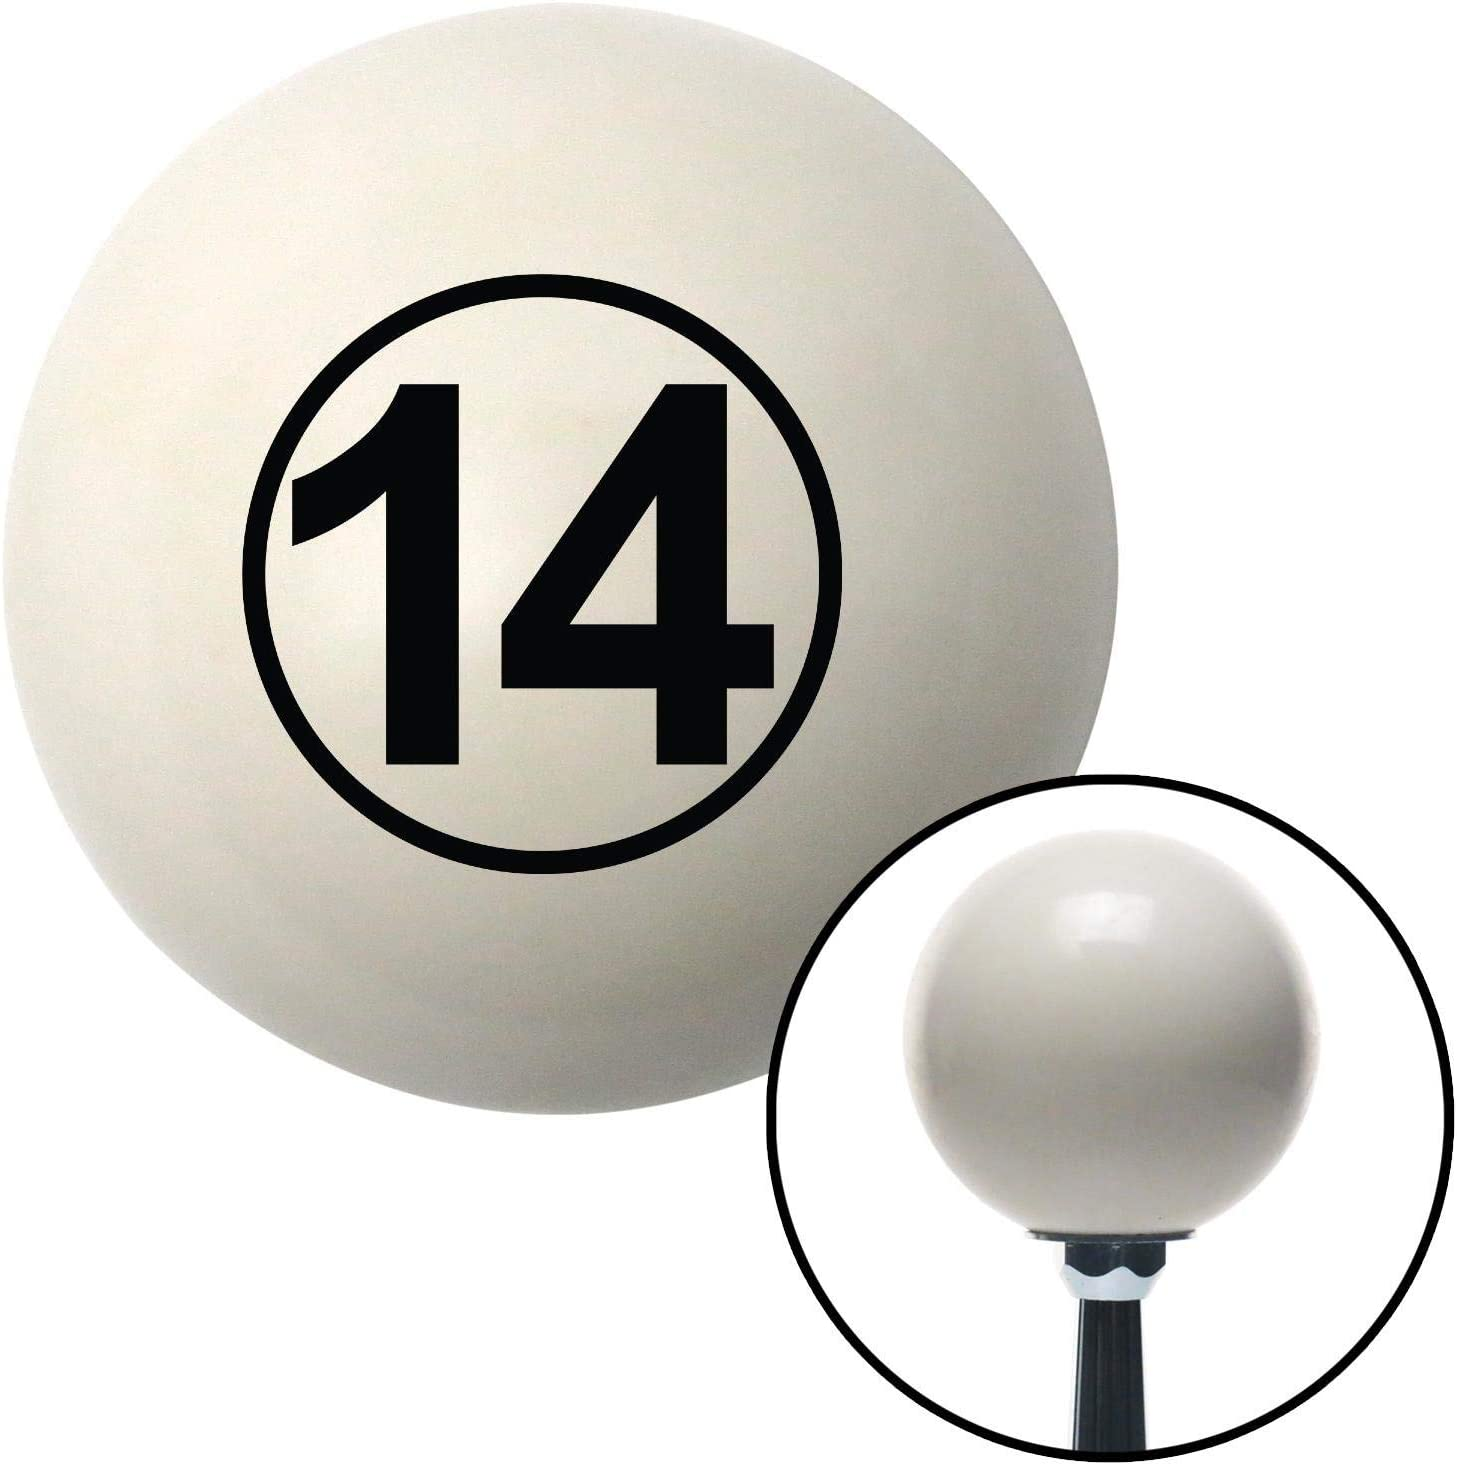 Red Ball 7 American Shifter 30325 Ivory Shift Knob with 16mm x 1.5 Insert